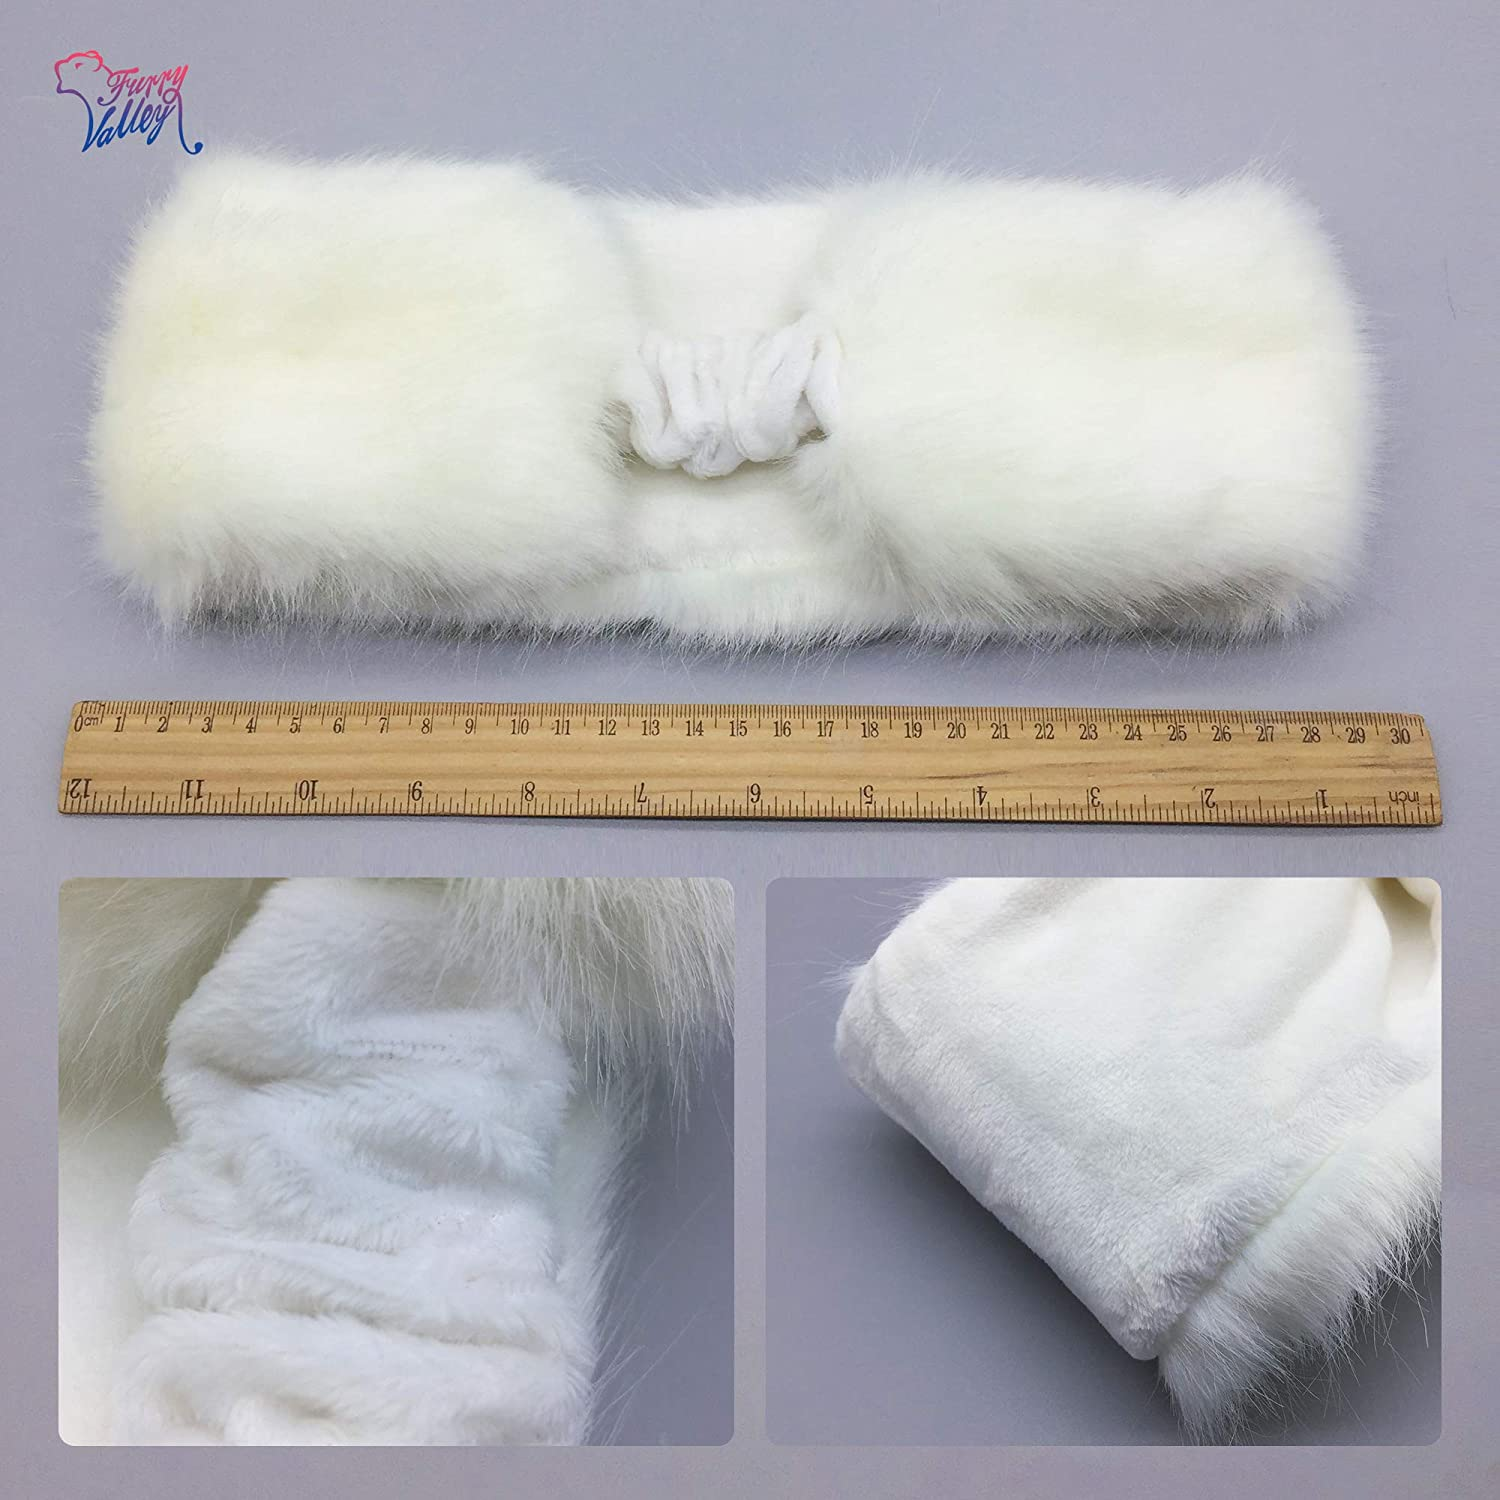 FurryValley Faux Fur Headband with Elastic for Womens Winter Earwarmer Earmuff Hat Coldweather Accessories(White)